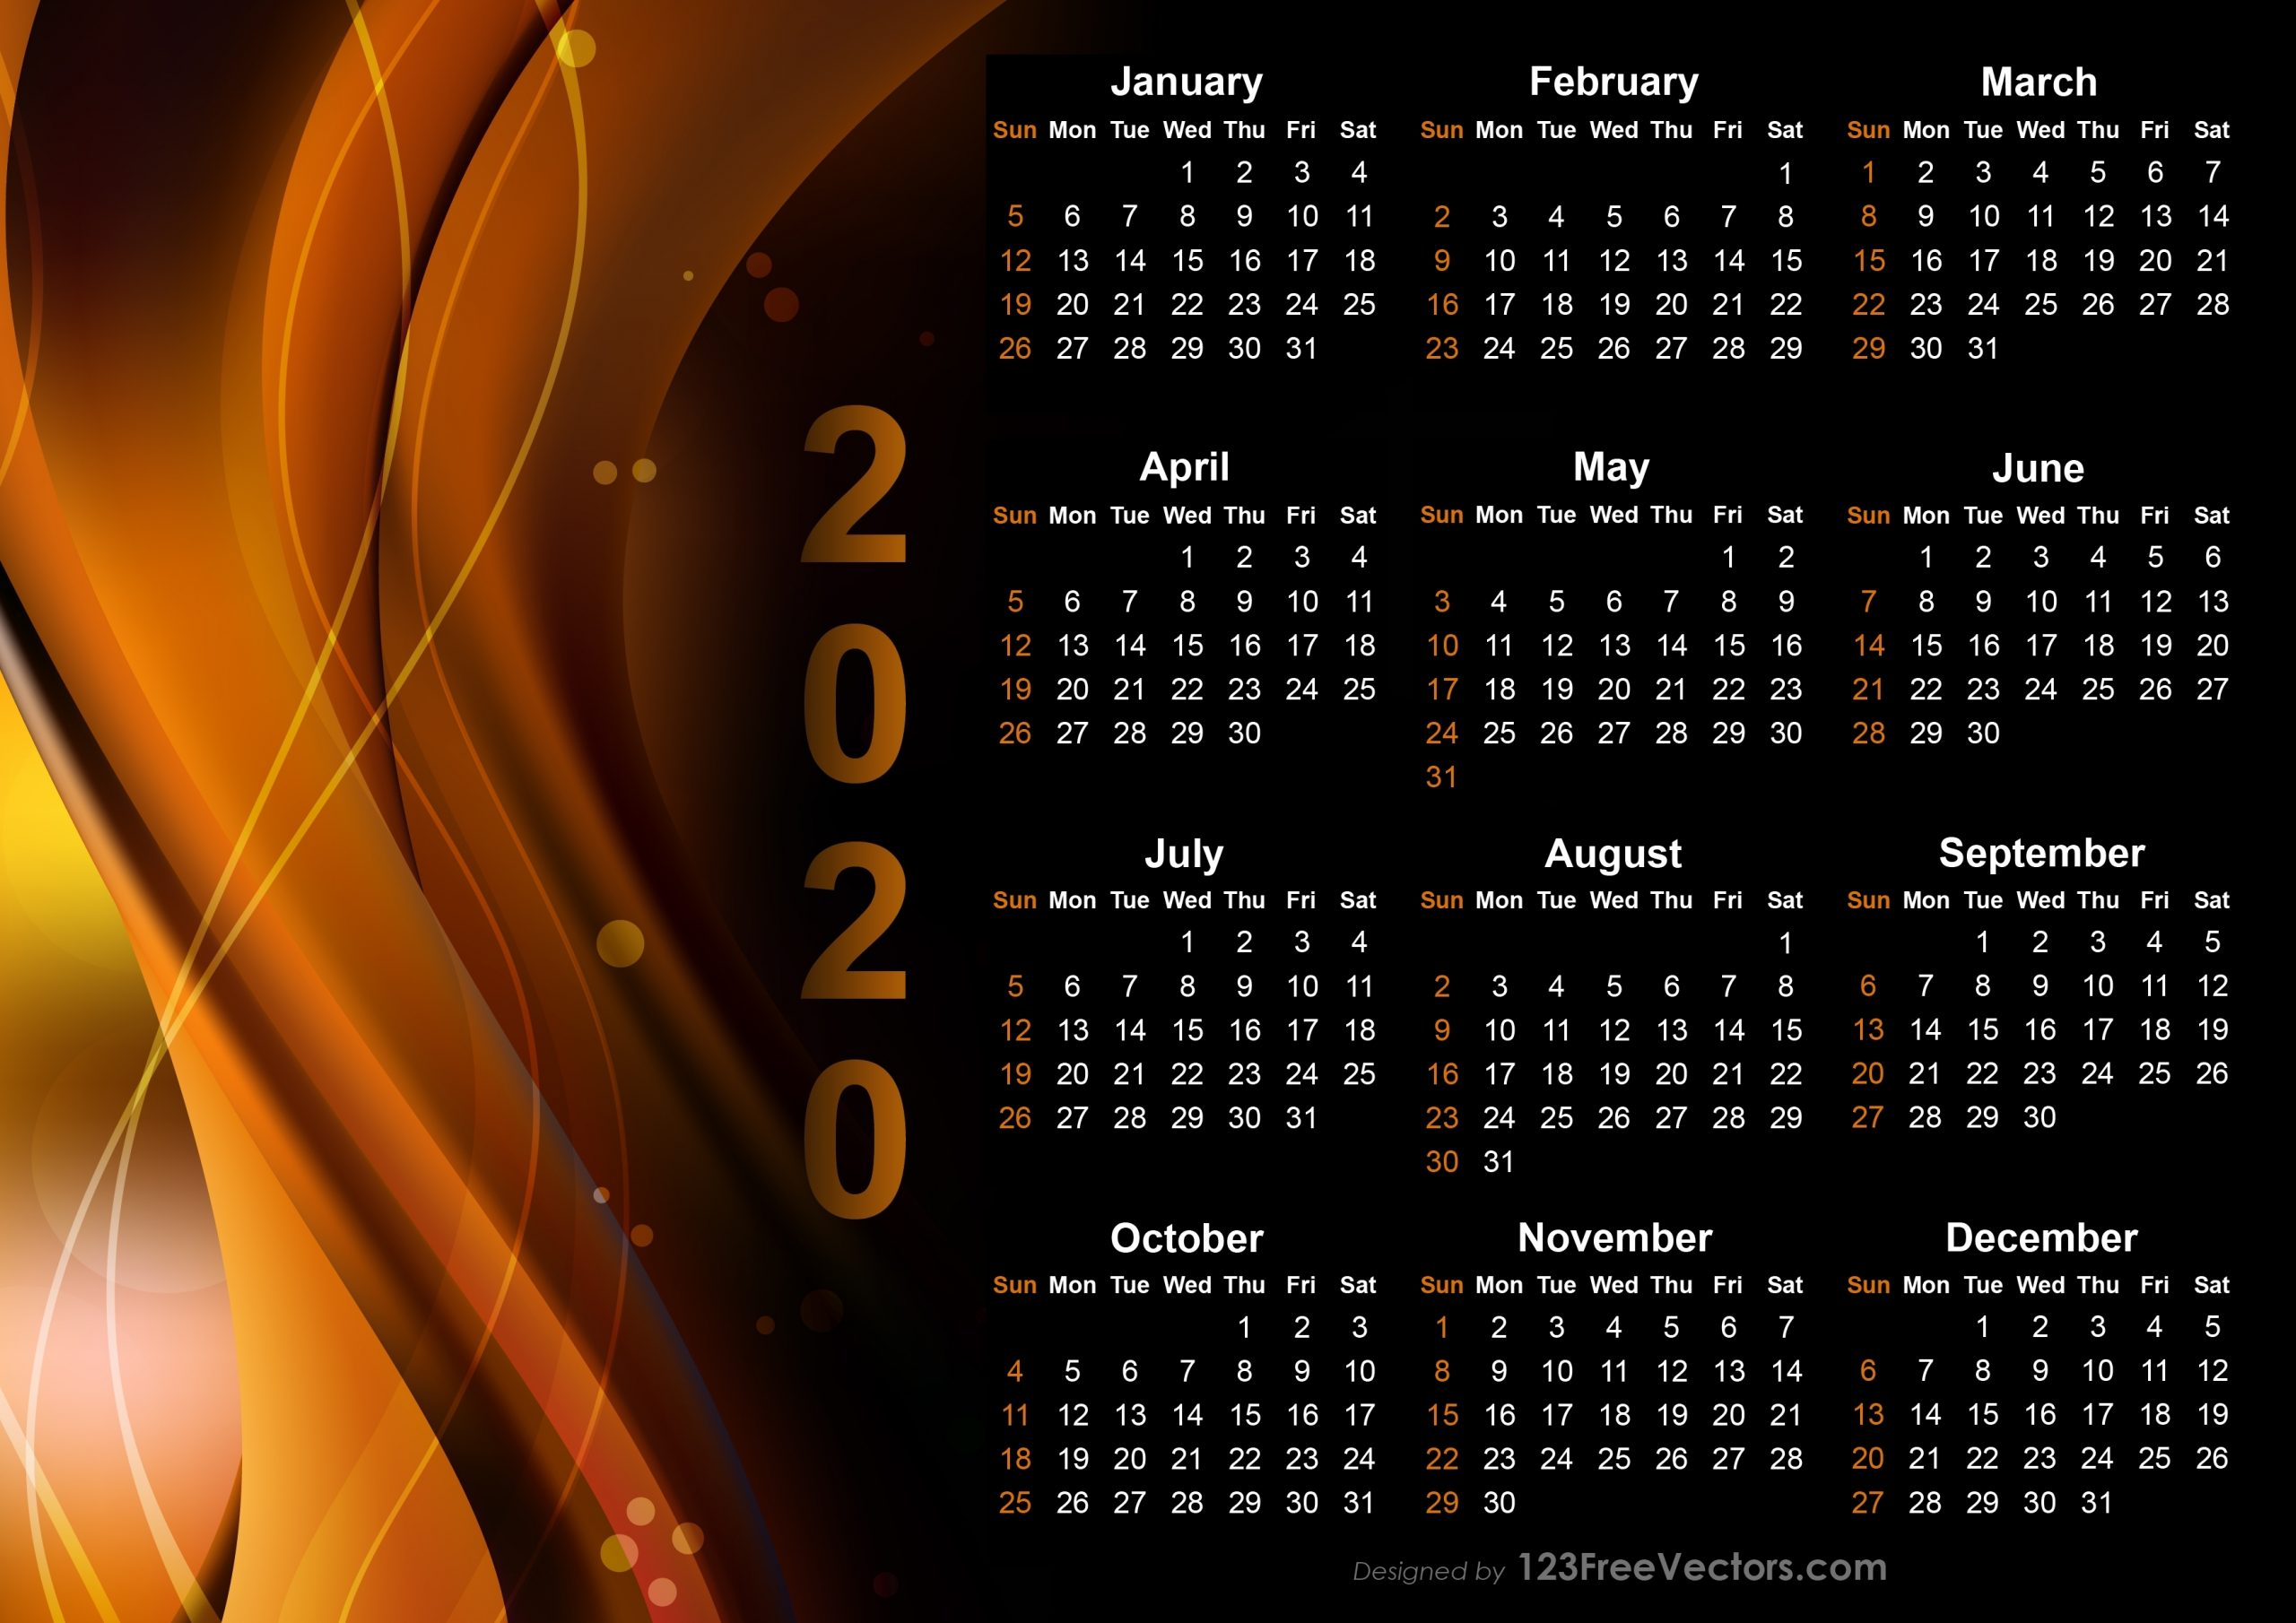 Free Calendar 2020 Design Templates Free Download within 2020 Design Calendar Printable Free